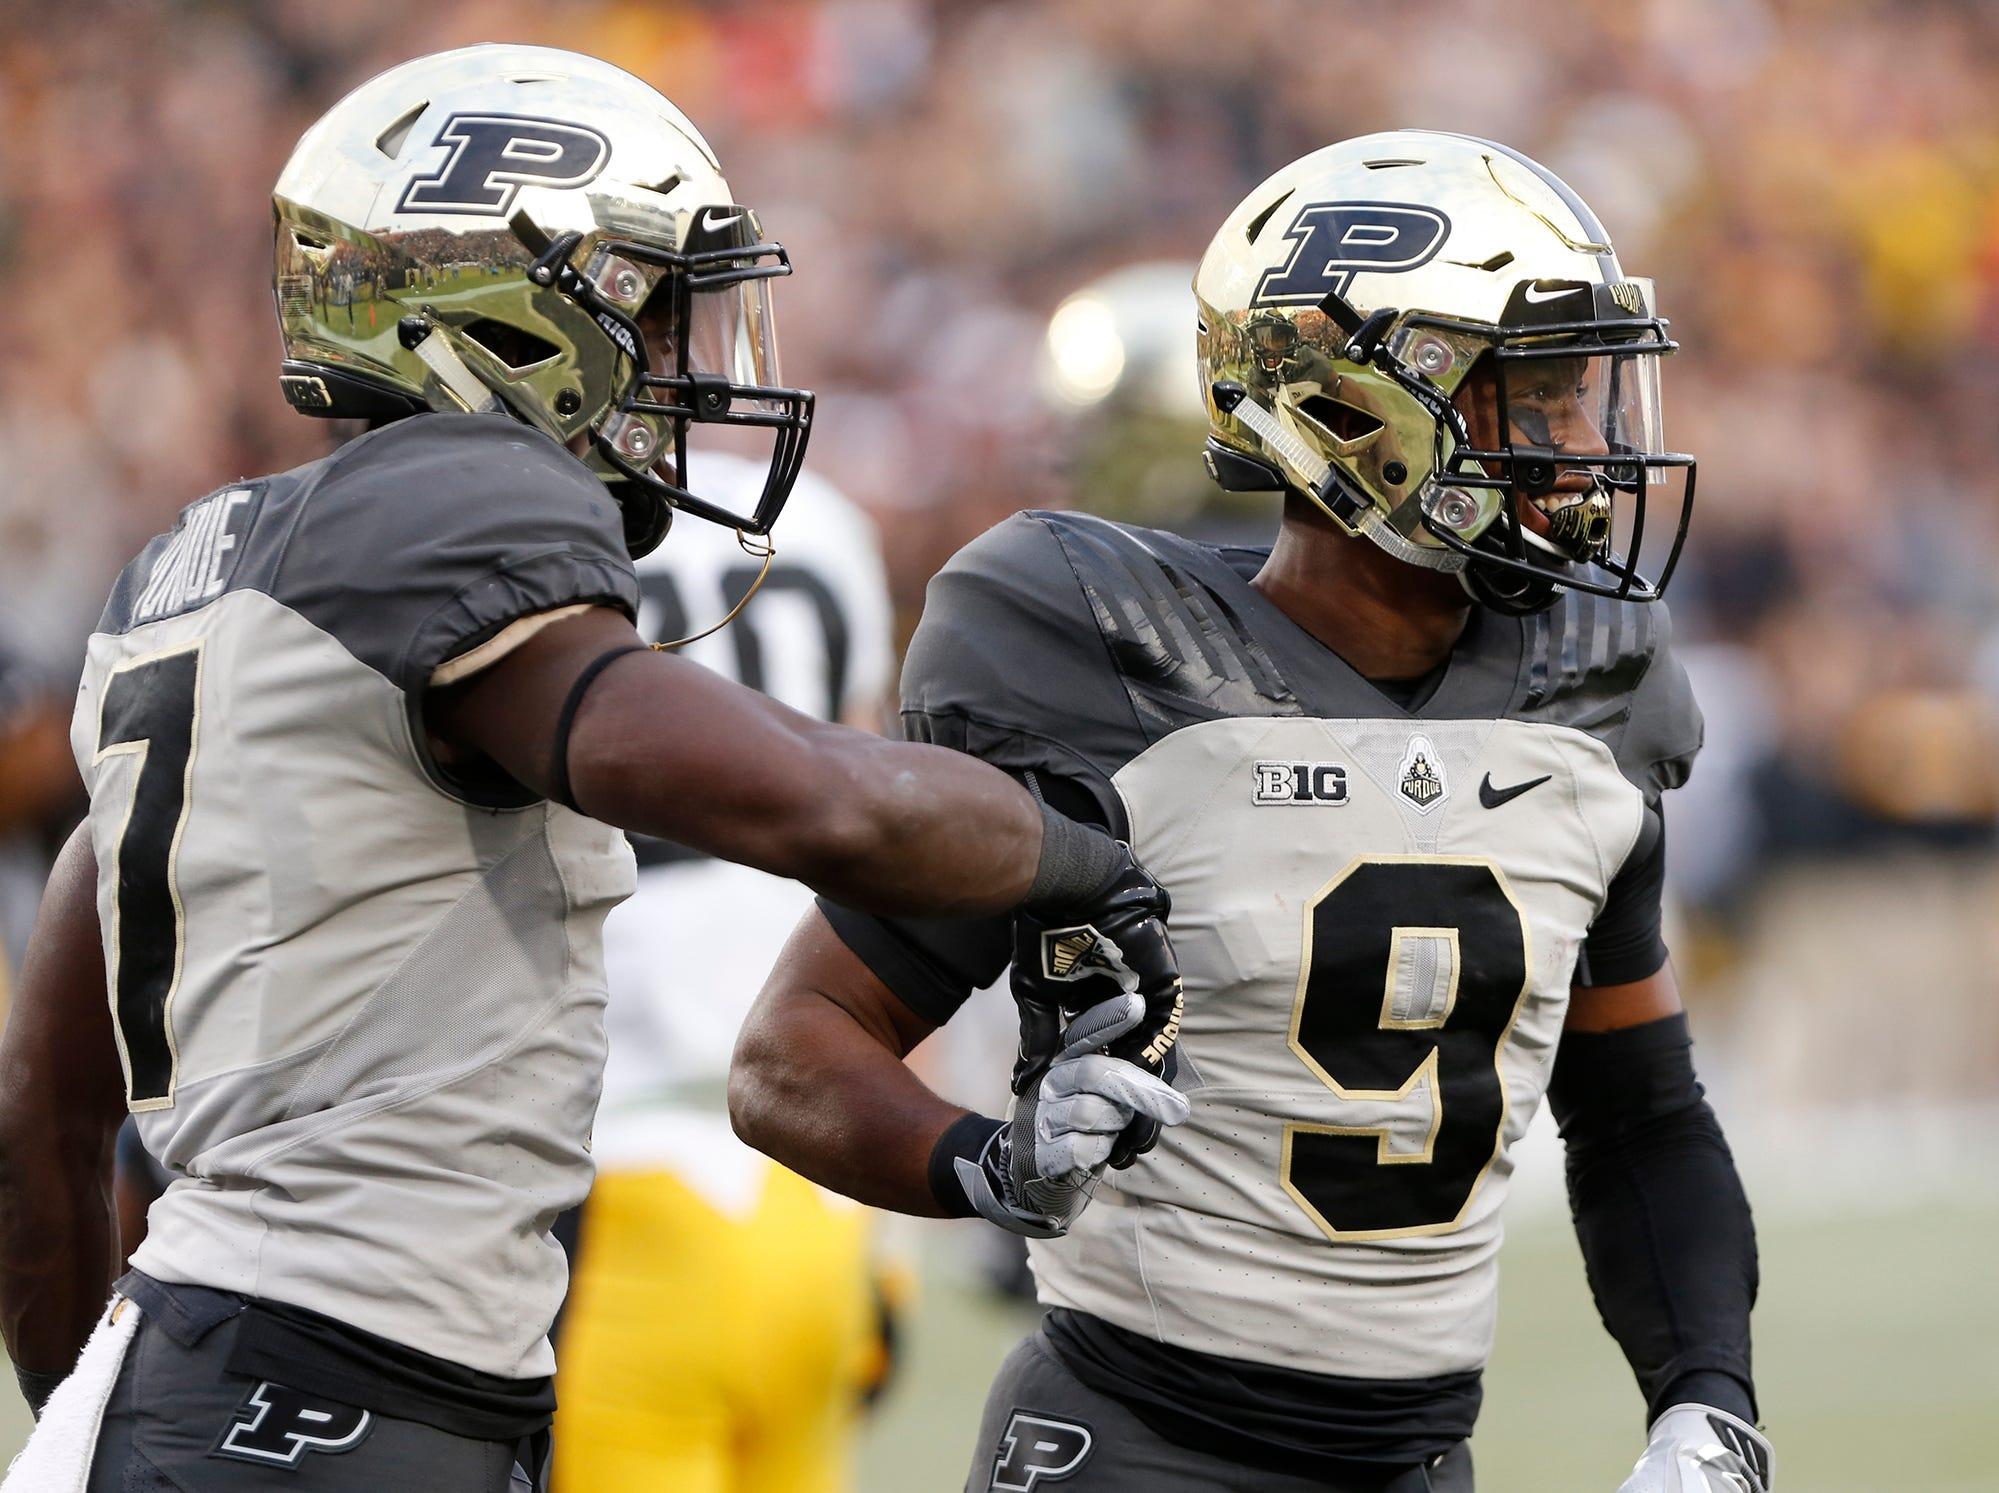 Terry Wright, right, of Purdue celebrates with teammate Isaac Zico after his touchdown reception at 2:26 in the third quarter against Iowa Saturday, November 3, 2018, at Ross-Ade Stadium. Purdue defeated Iowa 38-36.